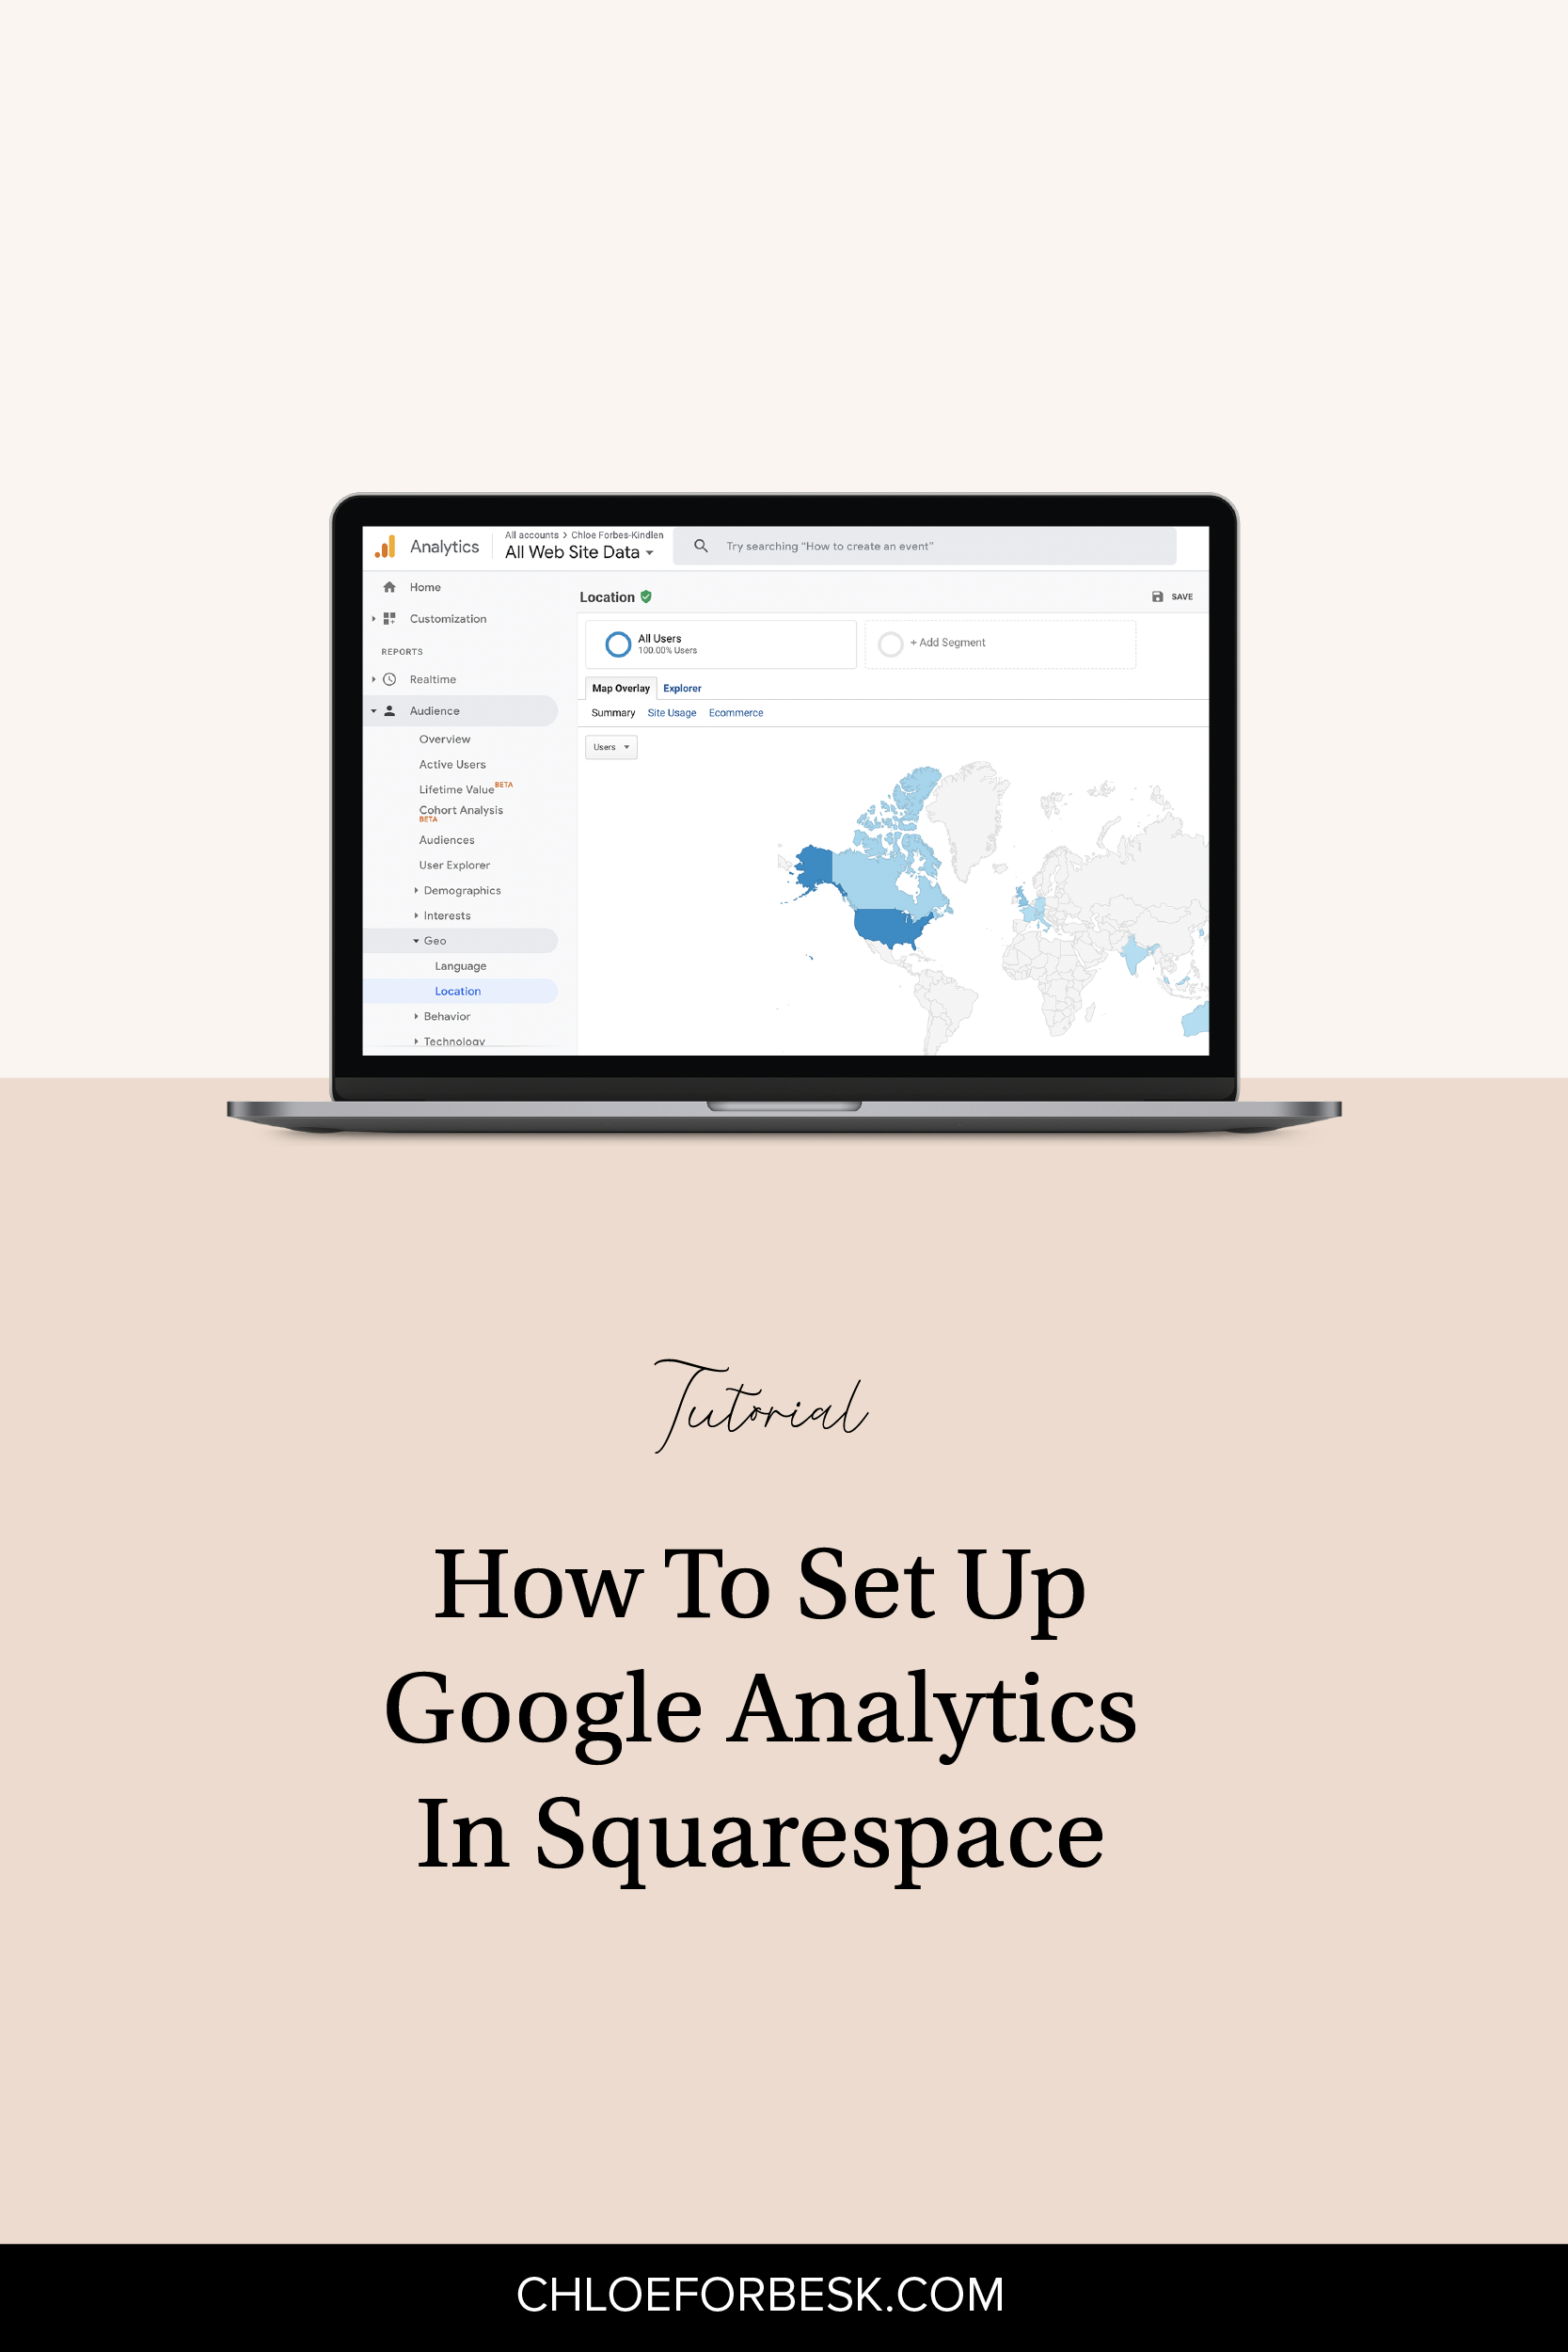 How To Set Up Google Analytics In Squarespace-01.png